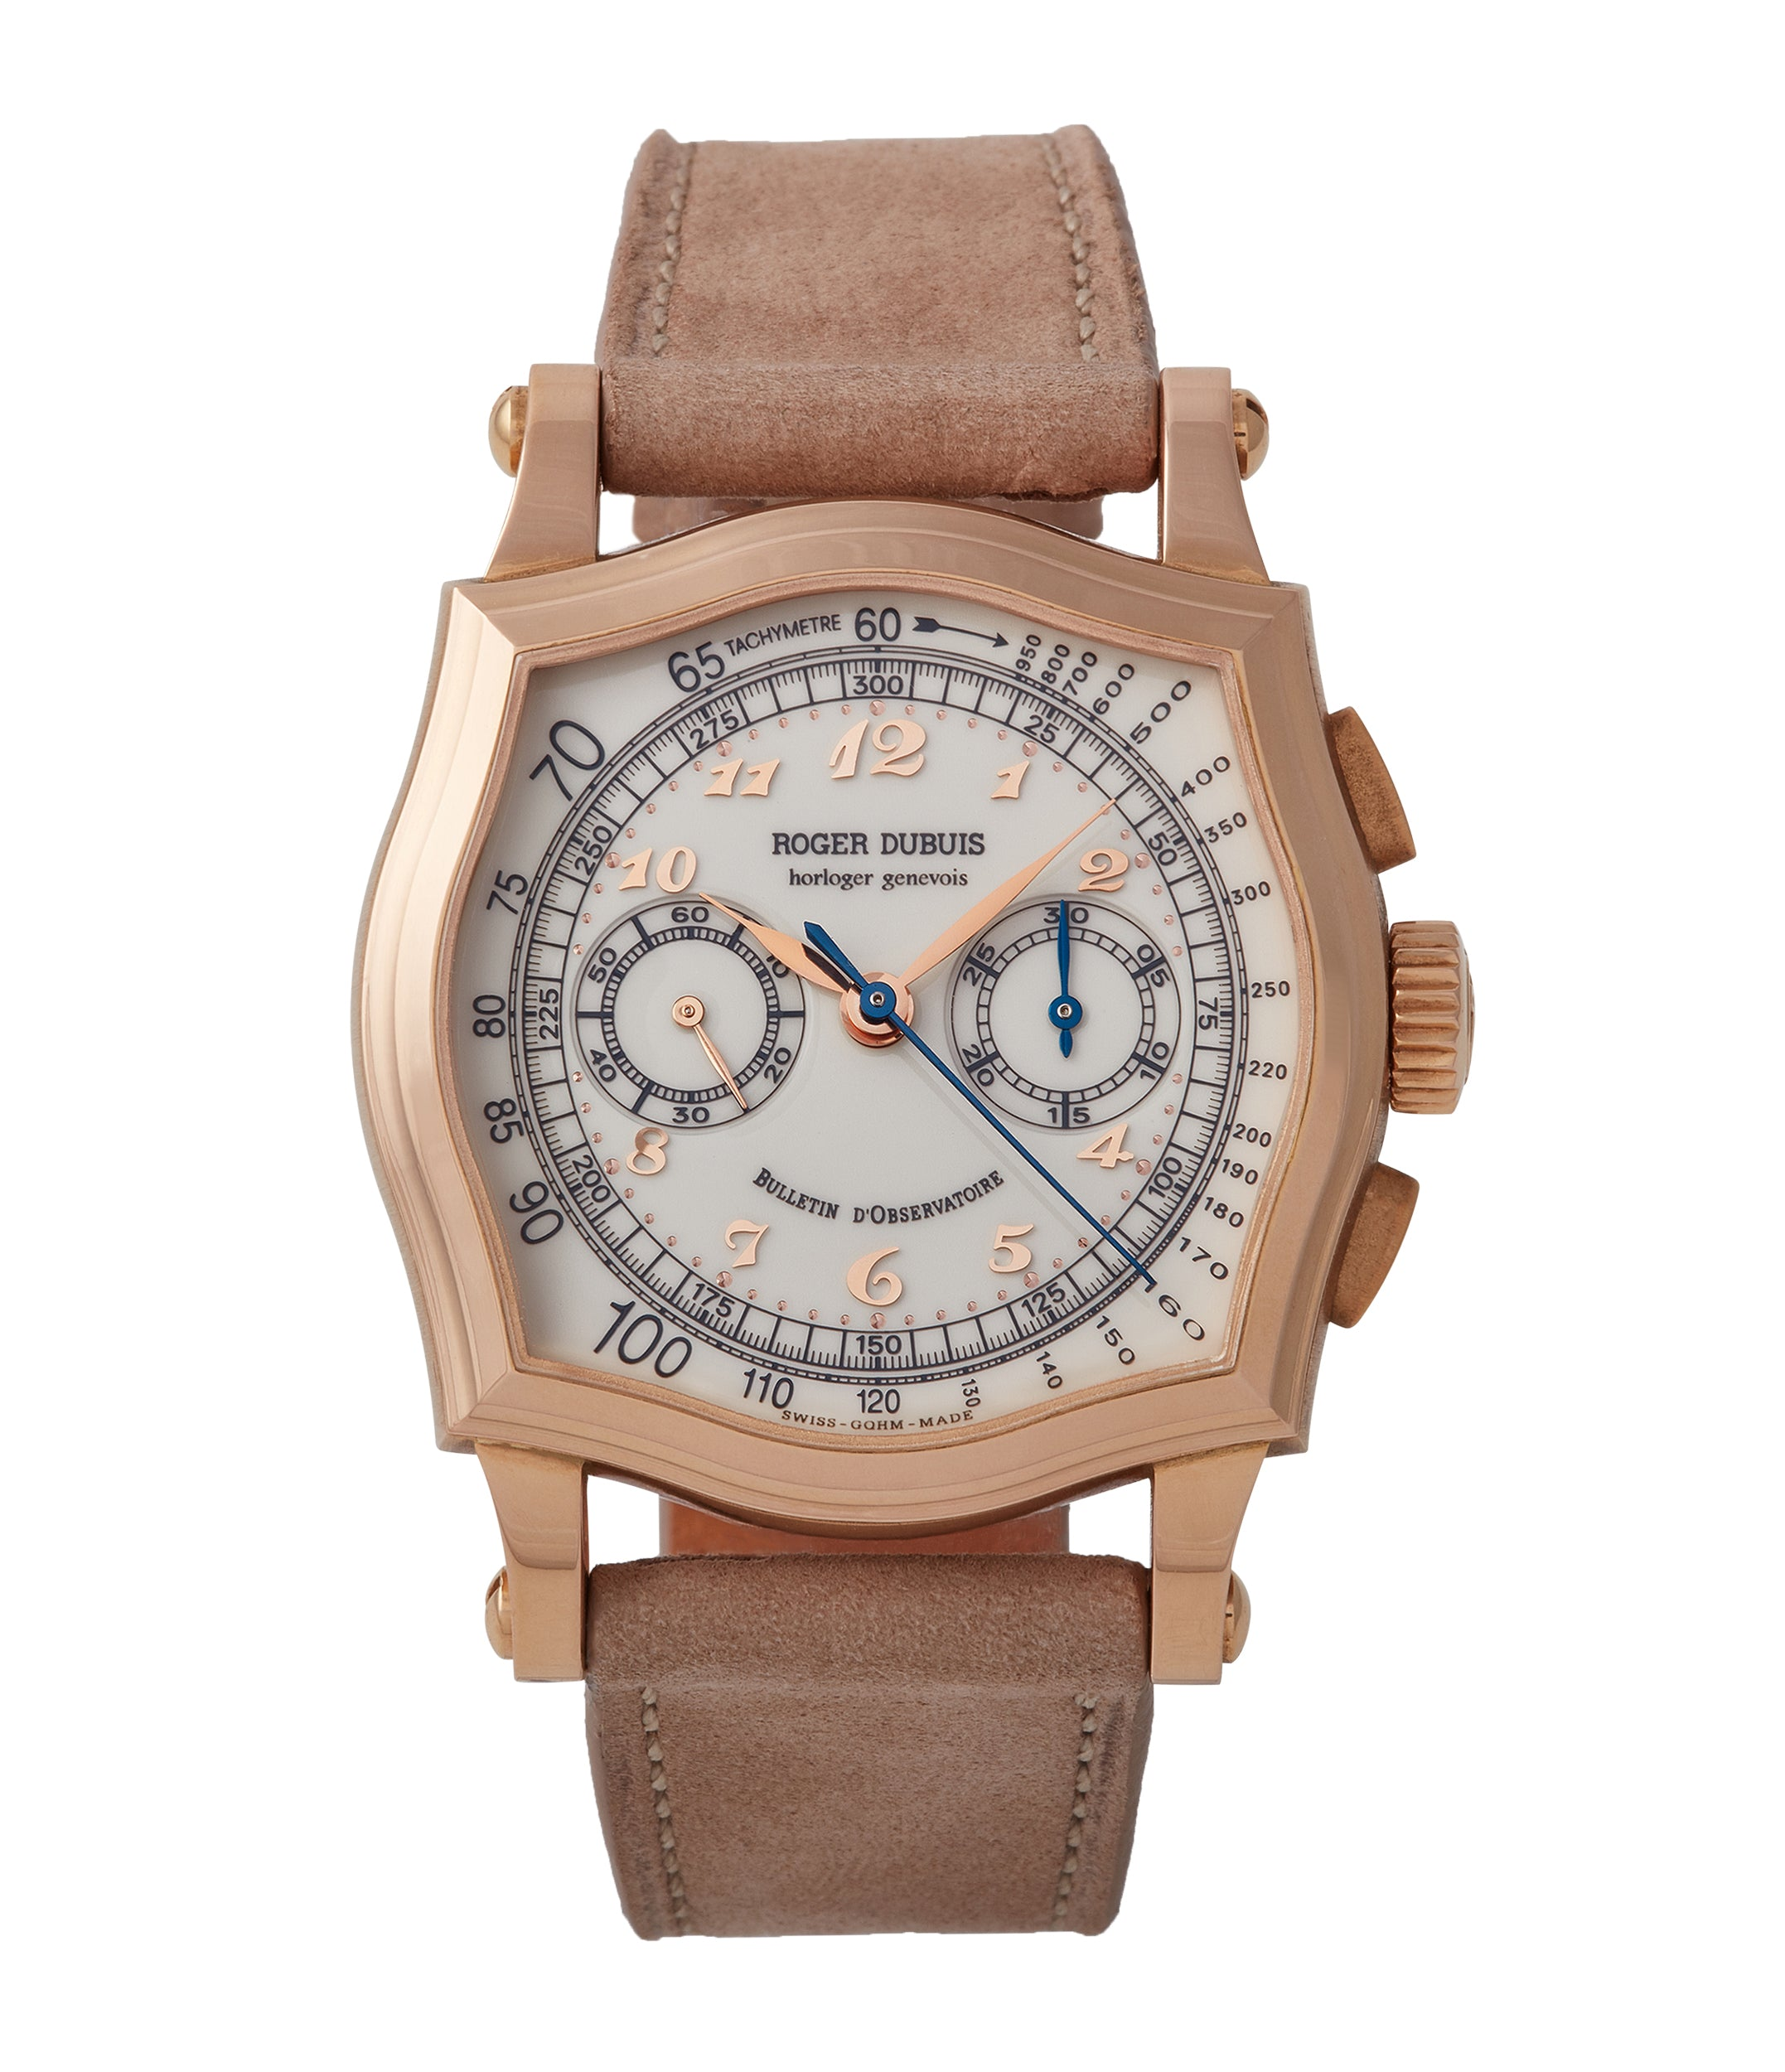 buy Roger Dubuis Sympathie Chronograph S37 56 0 rose gold dress watch for sale online at A Collected Man London UK specialist of independent watchmakers